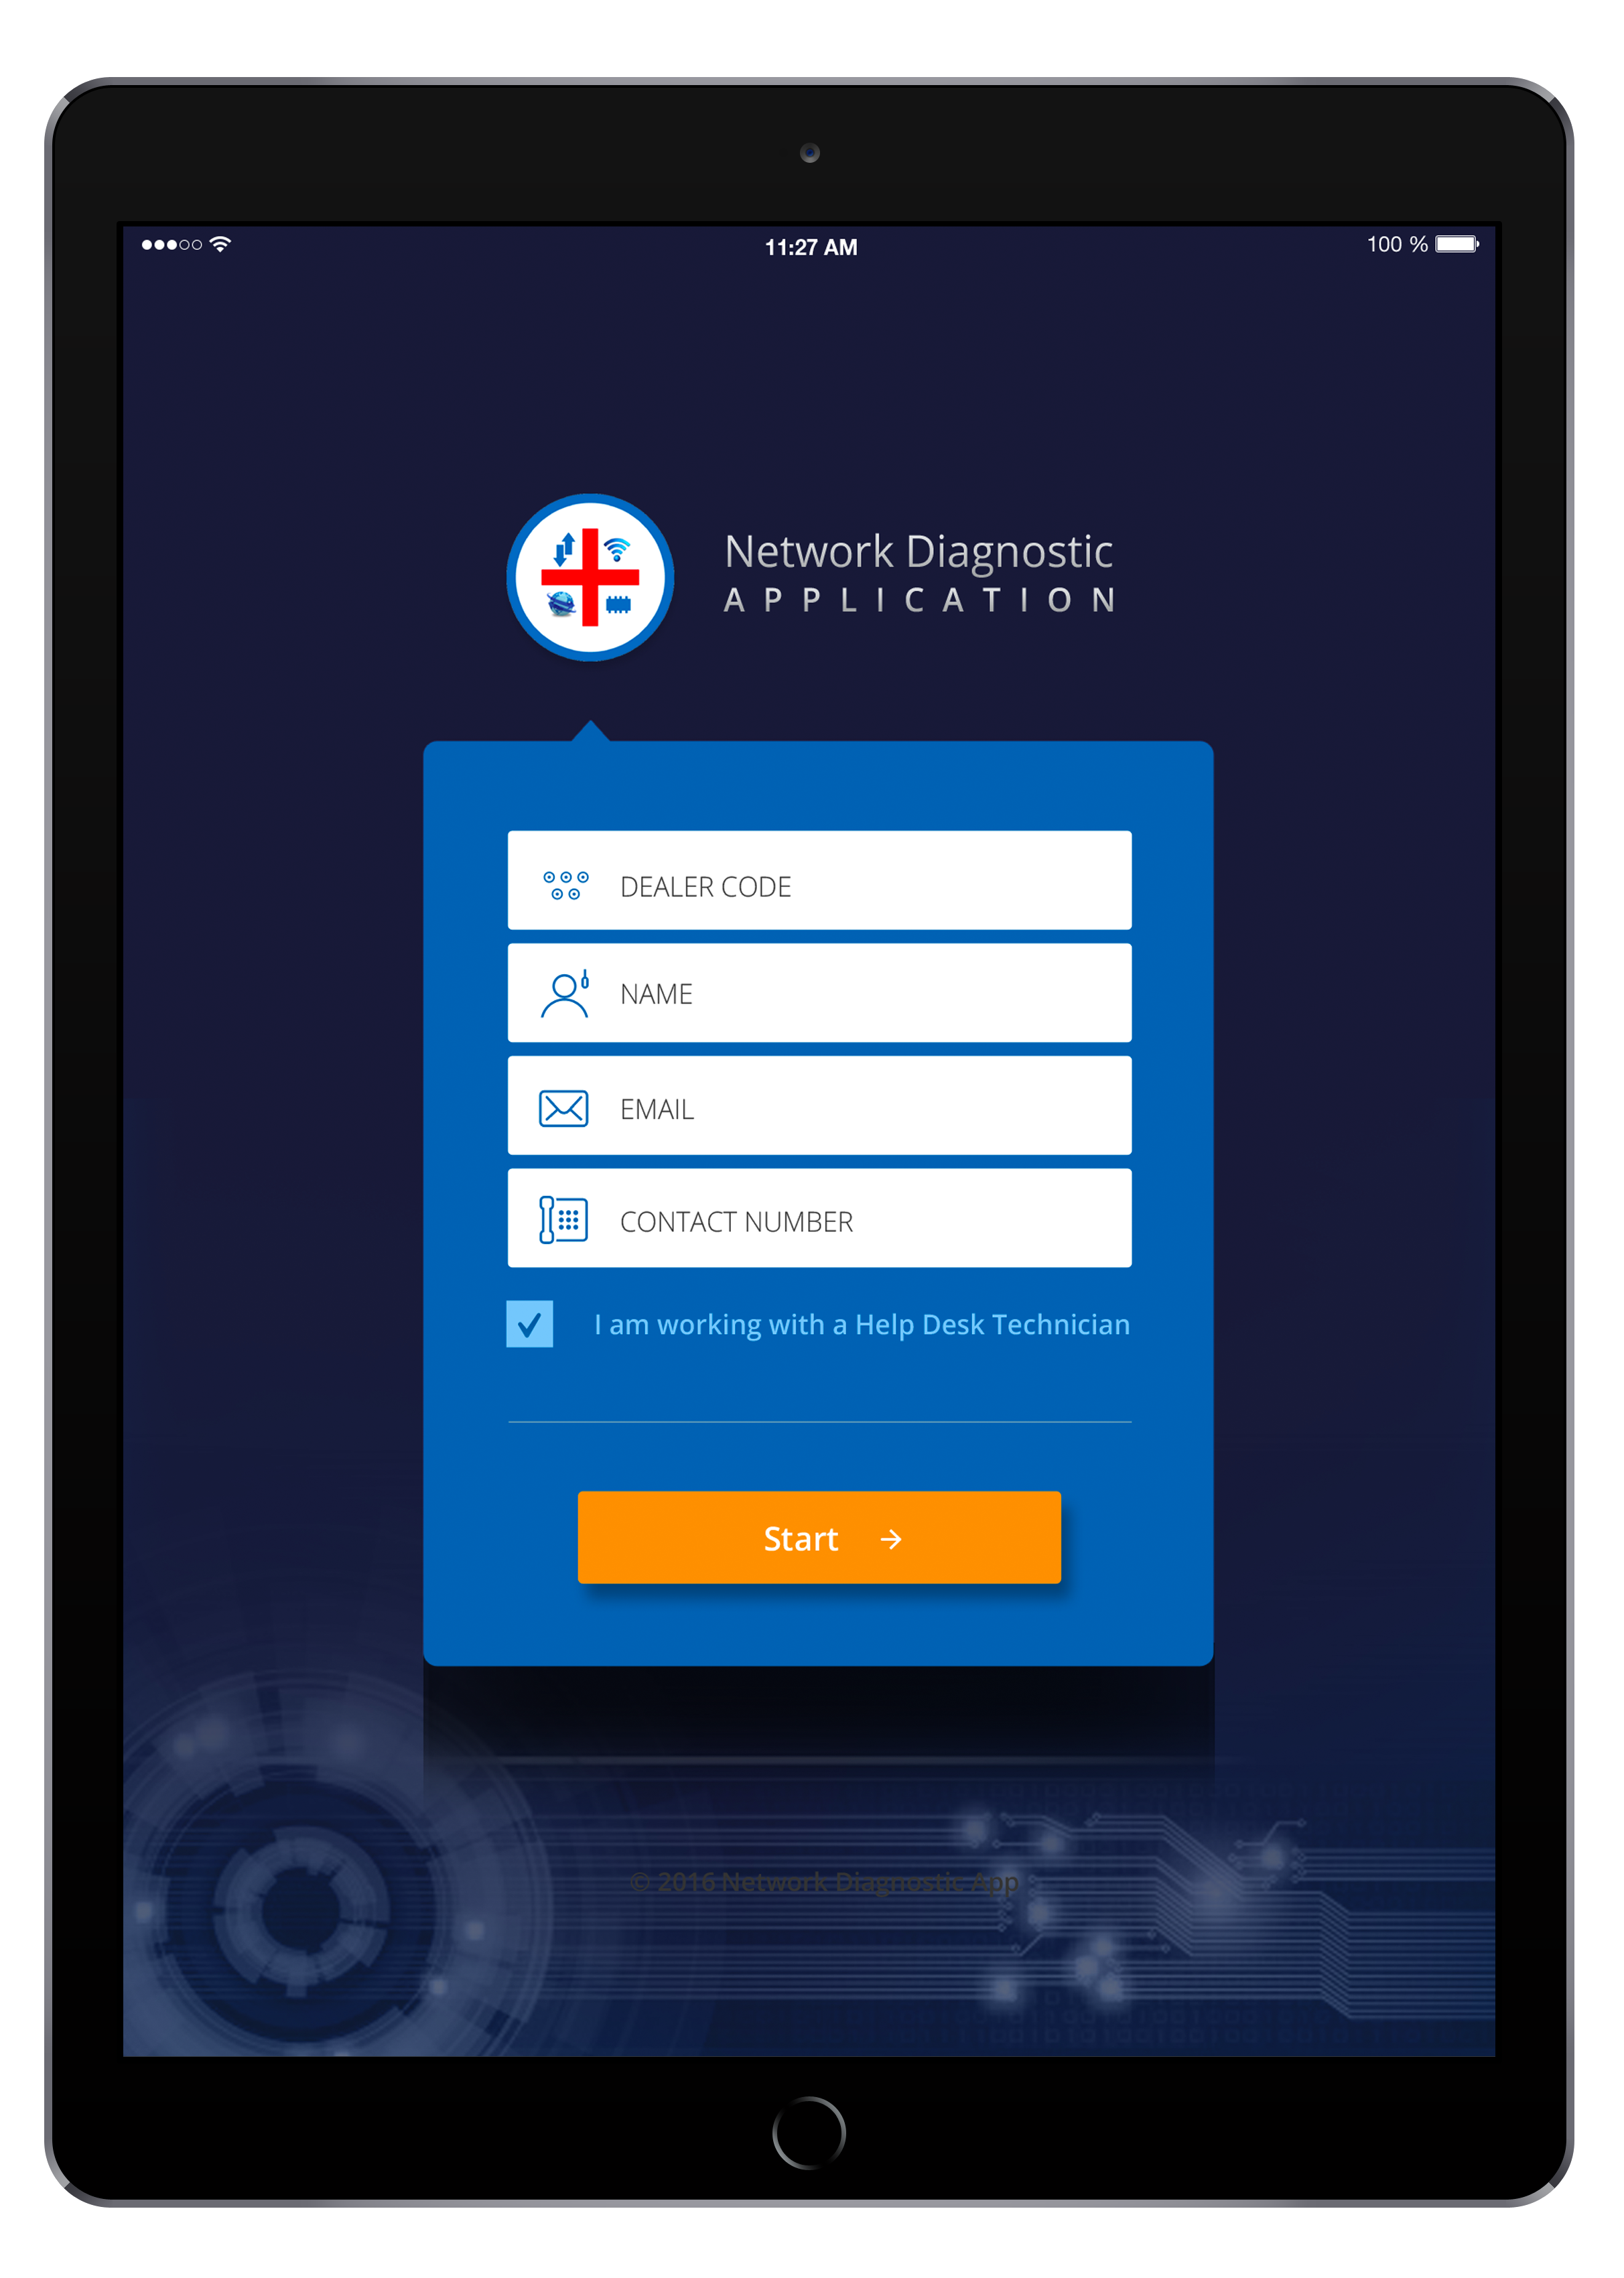 Design an intuitive UI & layout for a network diagnostic application